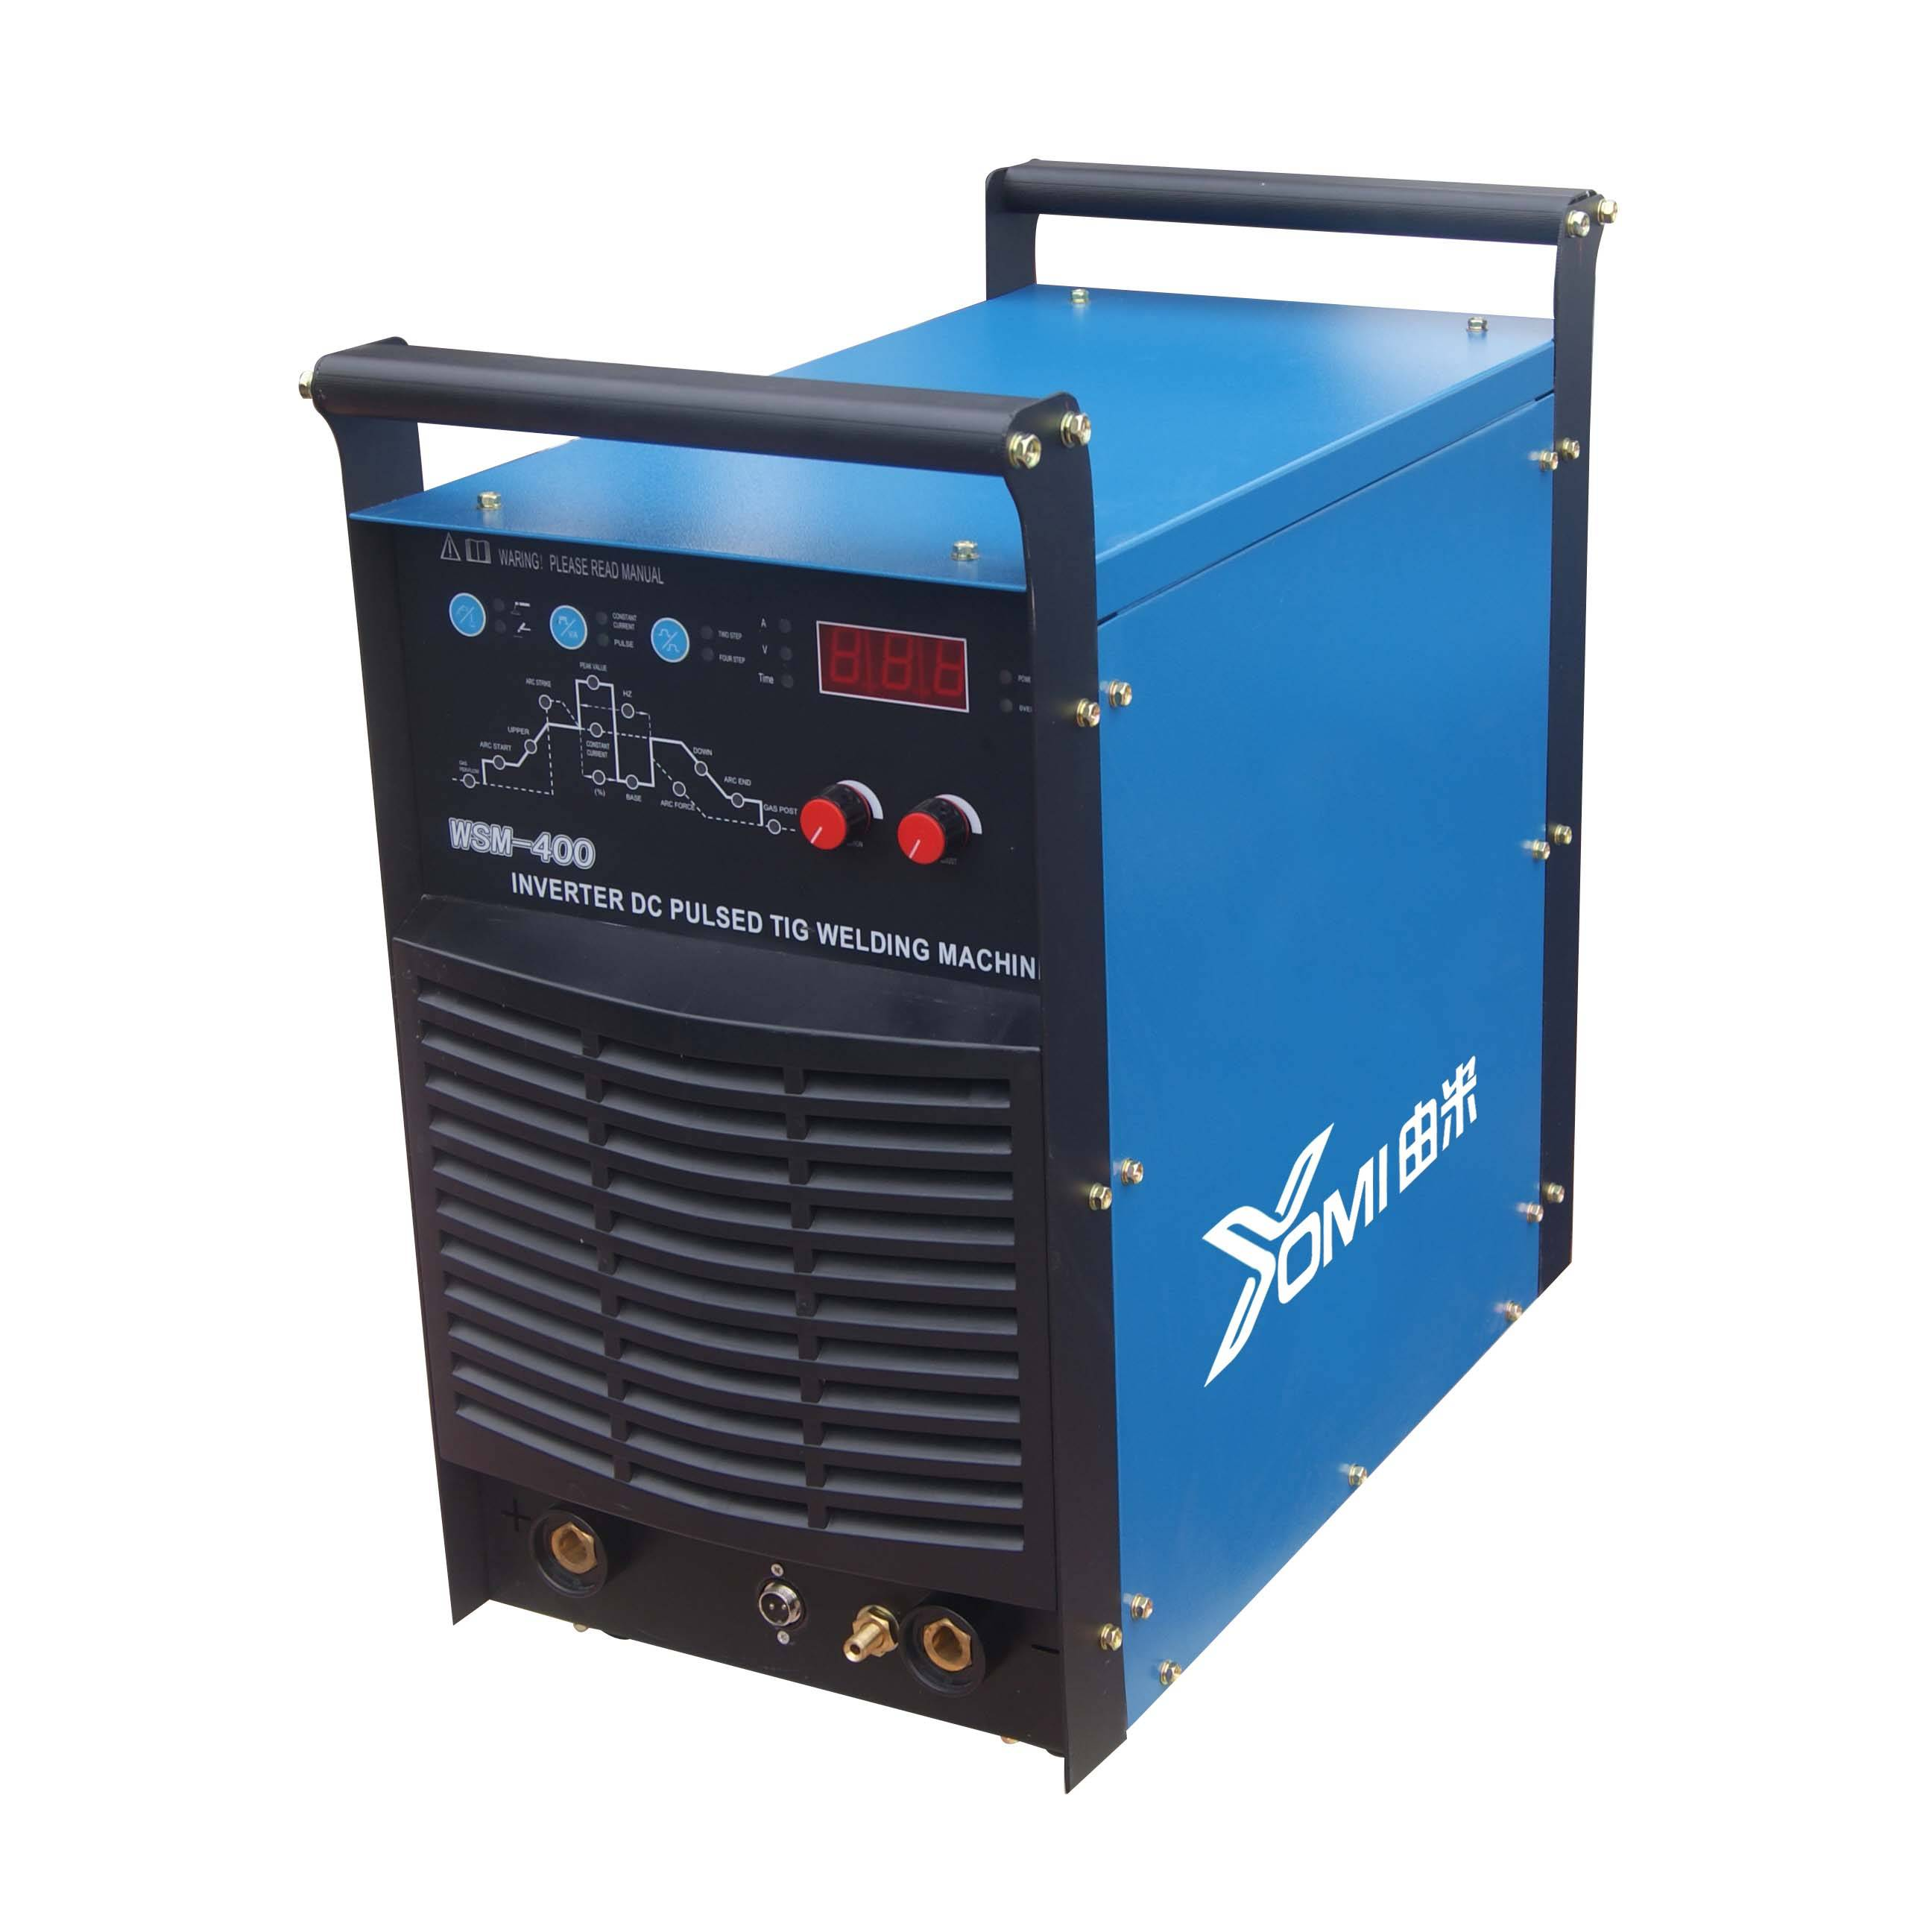 Quality Inspection for Capacitor Discharge Welding Machine -